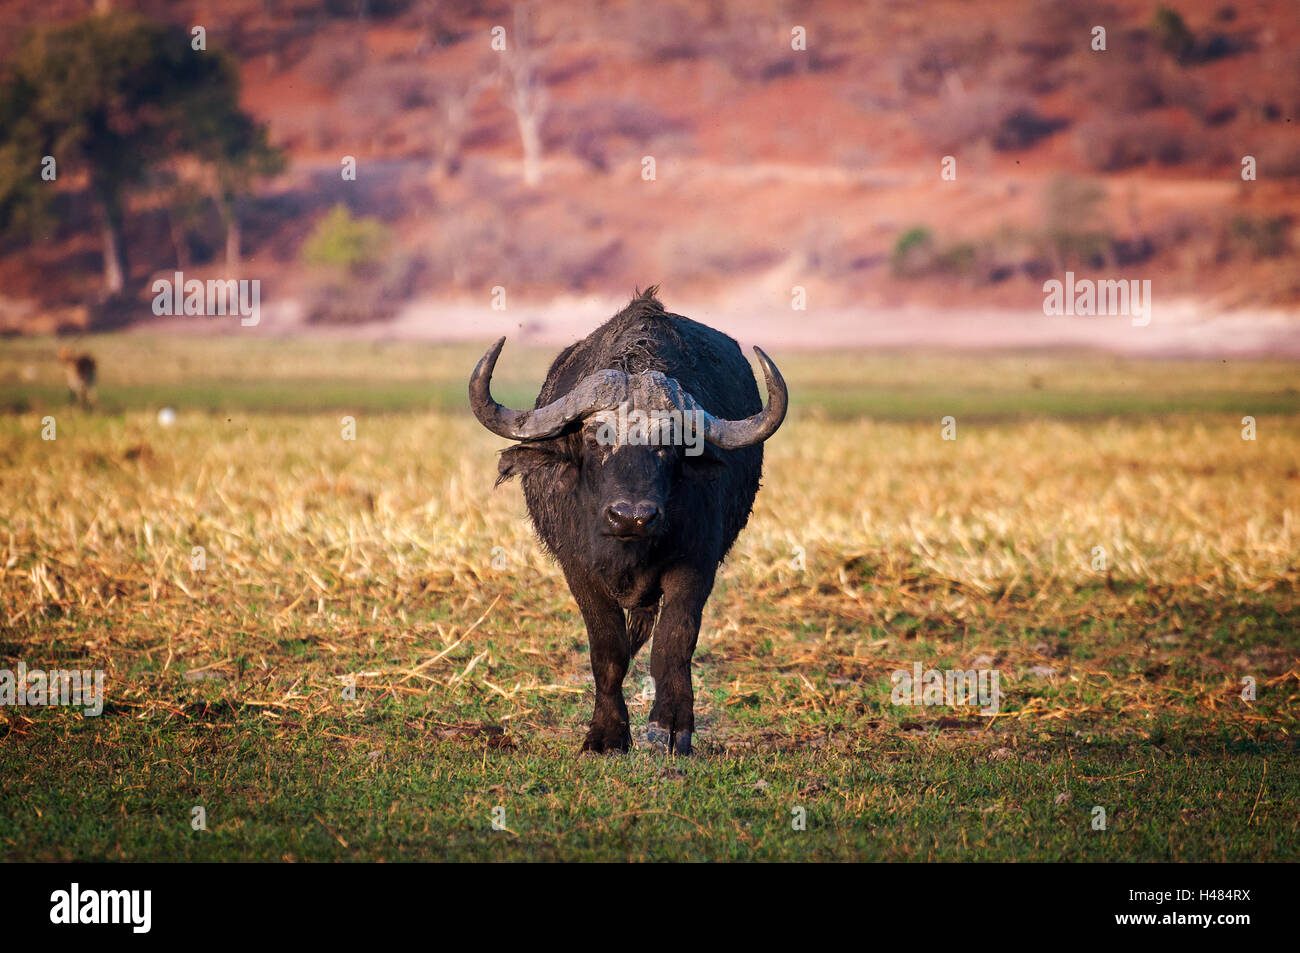 Buffalo in the Chobe National Park in Botswana, Africa; Concept for travel in Africa and Safari Stock Photo